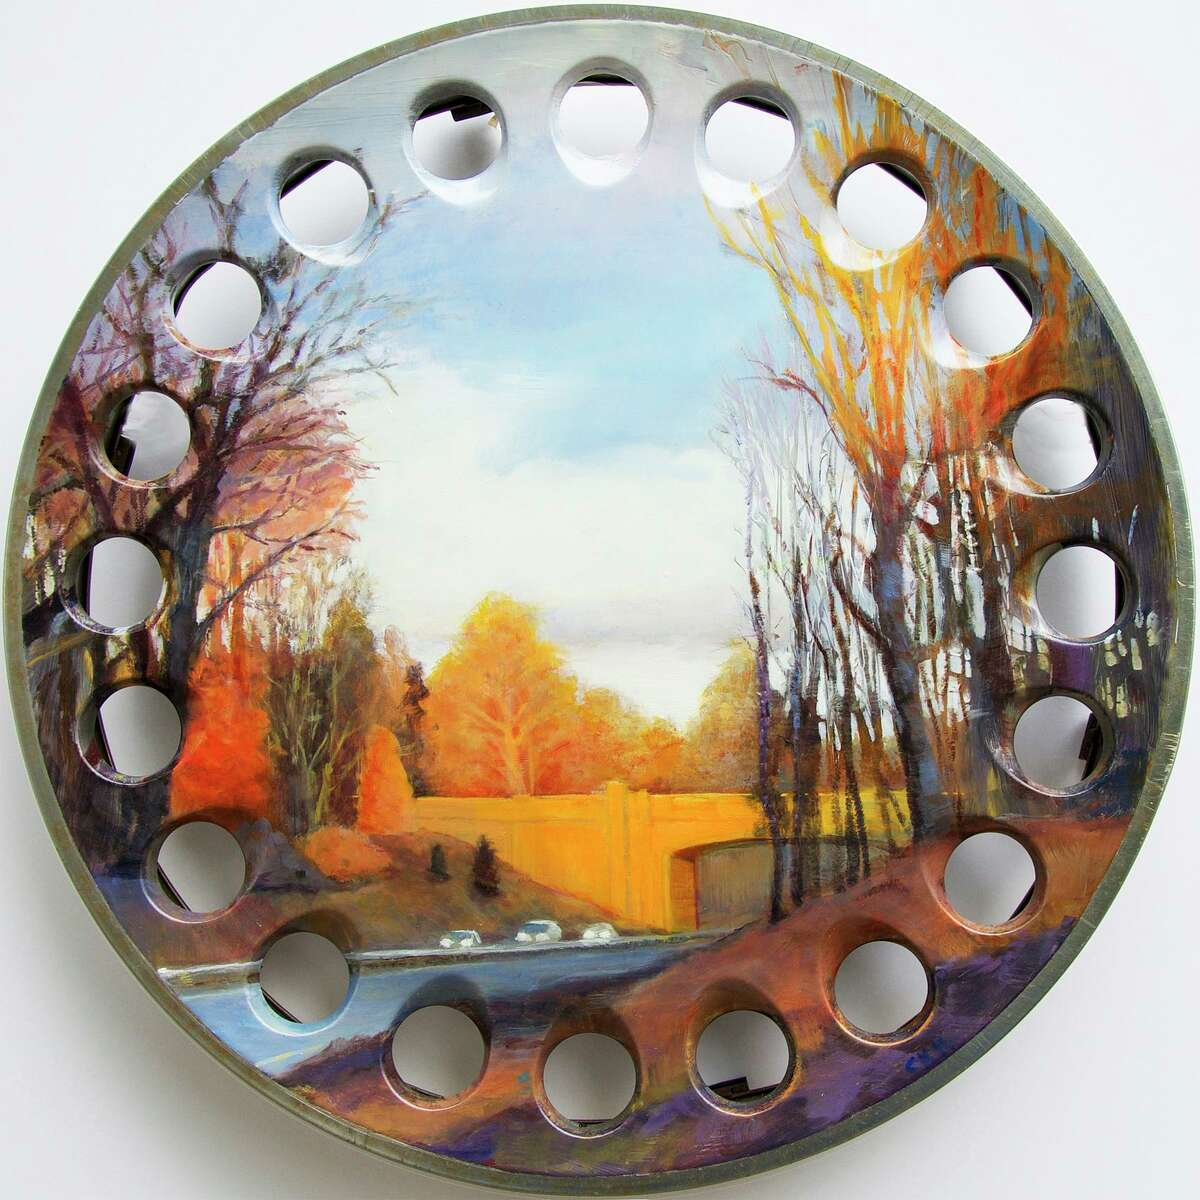 The Travelers, an oil on stainless steel hubcap, by Cynthia Mullins.